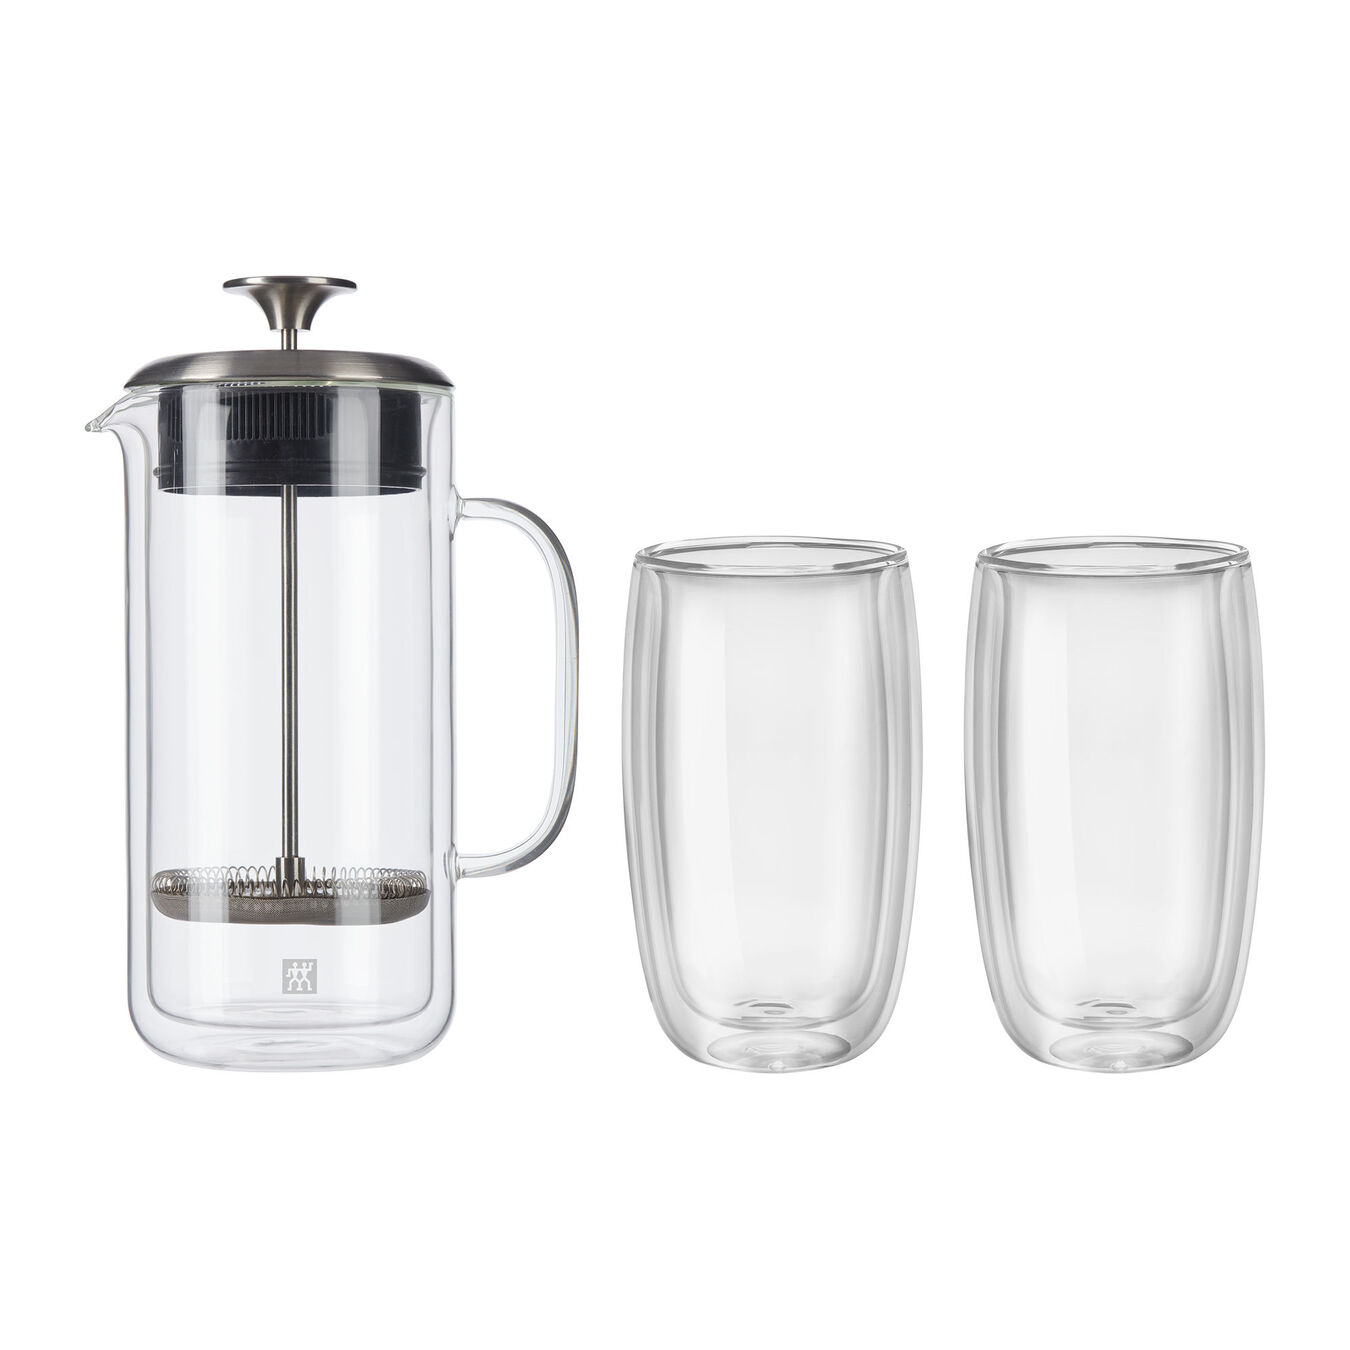 3-pc Double Wall French Press and Latte Glass Set,,large 1